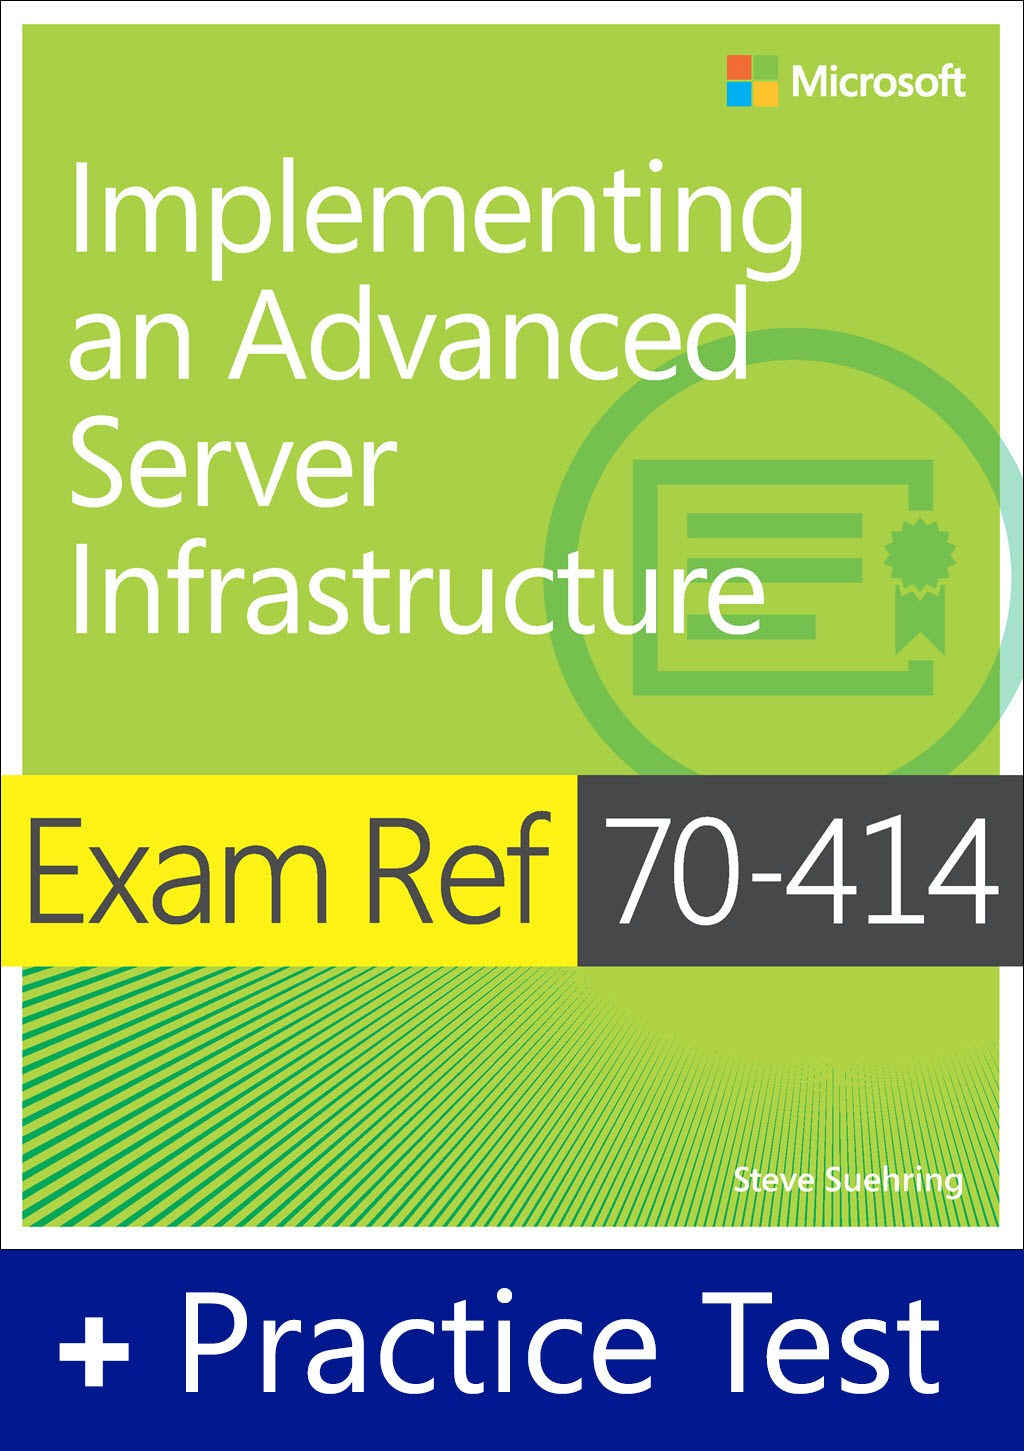 Exam Ref 70-414 Implementing an Advanced Server Infrastructure with Practice Test